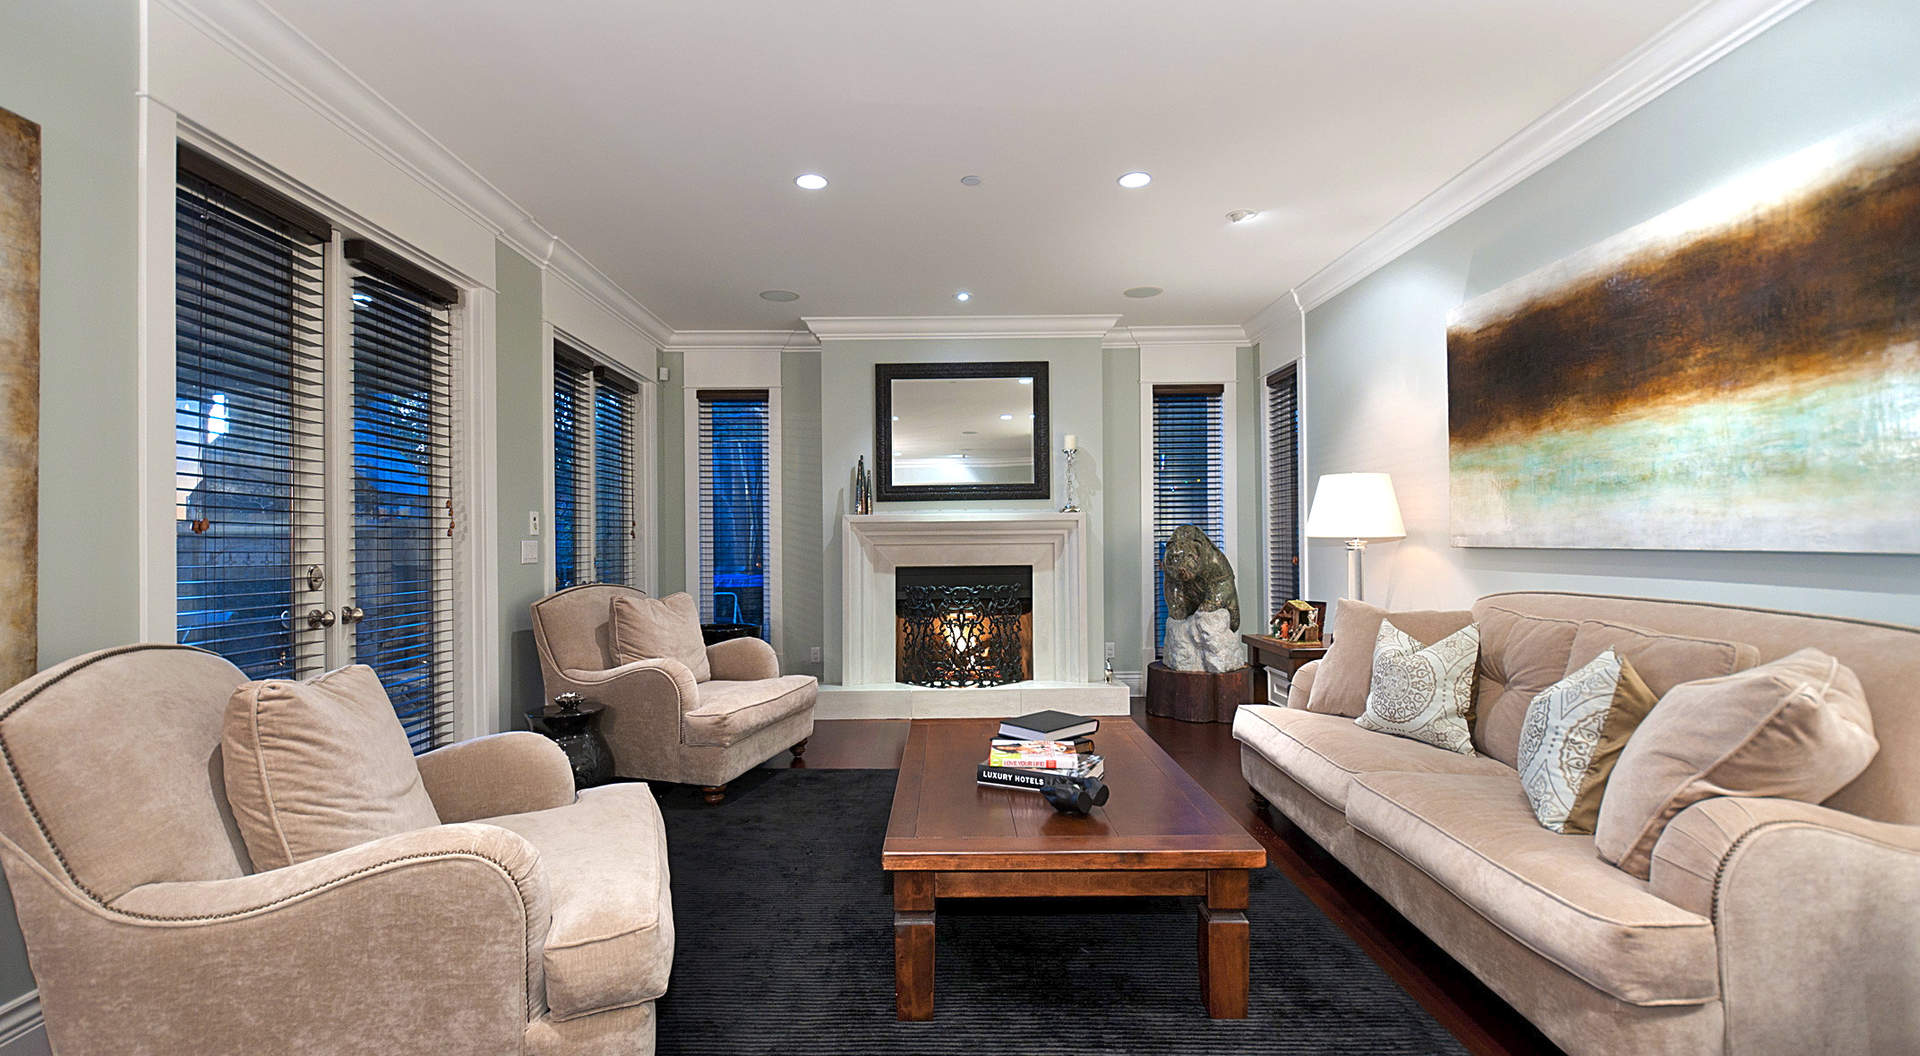 Spacious Living Area with Roaring Fireplace